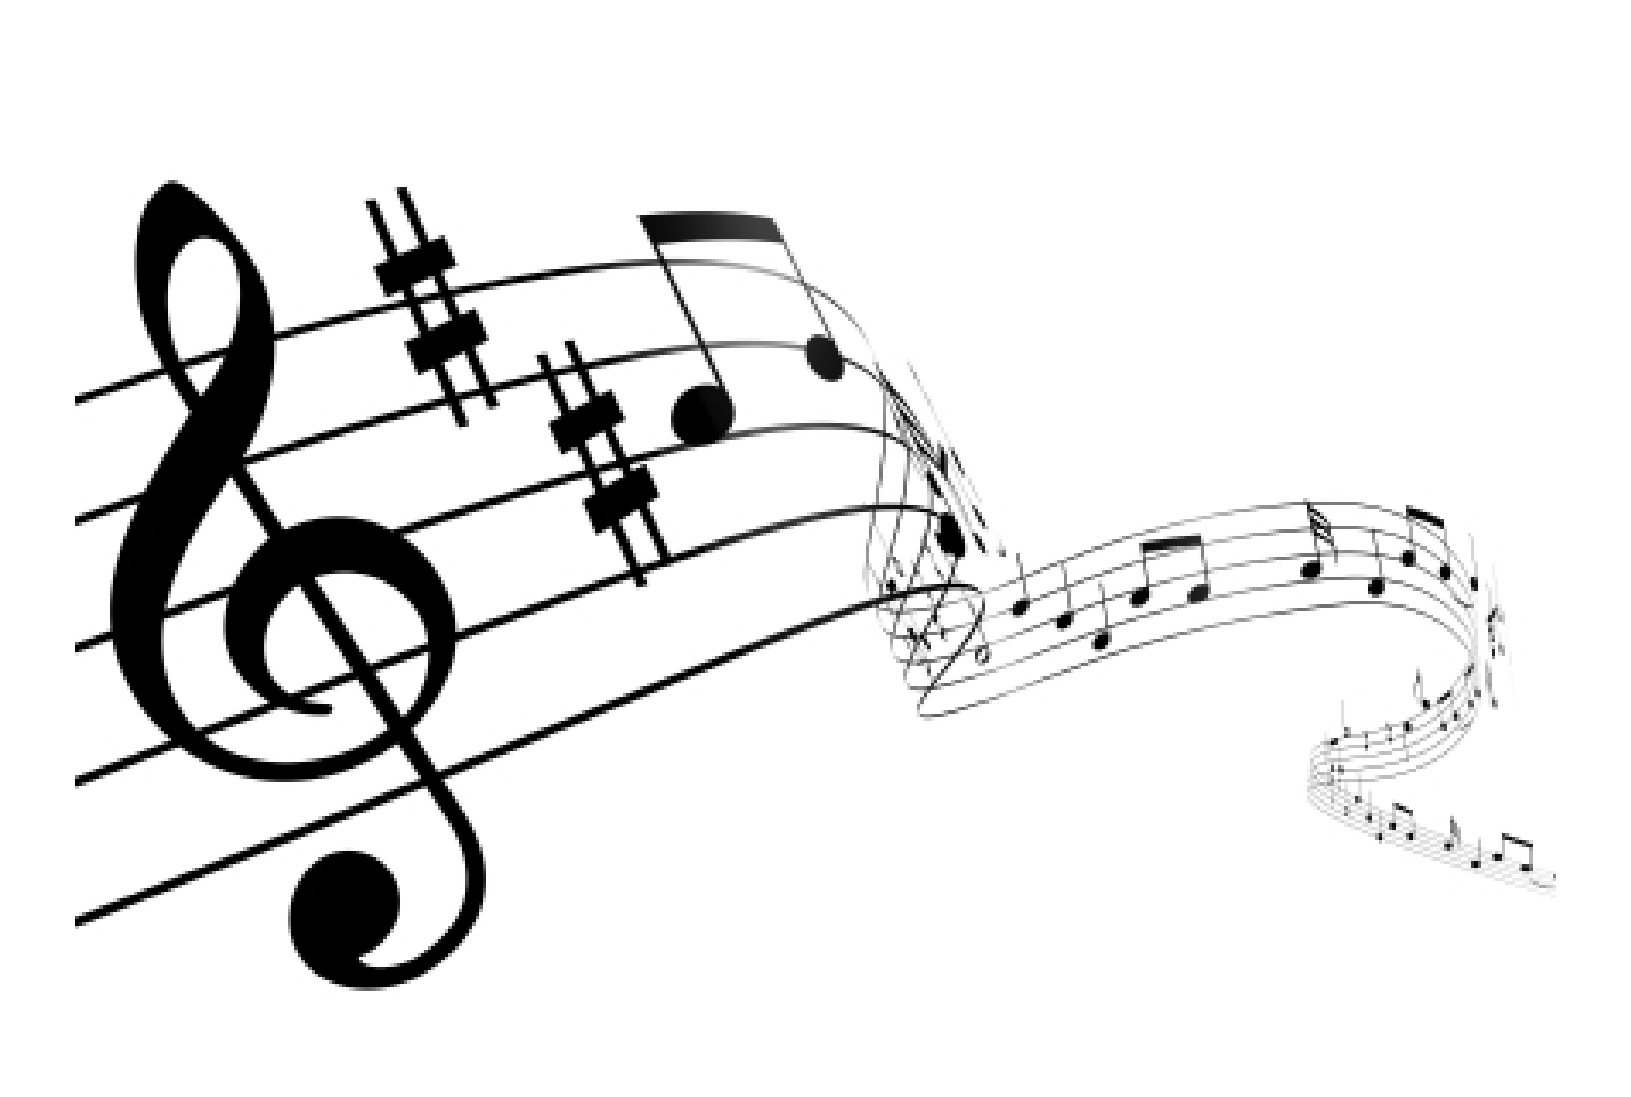 Free Music Note Clip Art Music Notes Tattoo Drawing Ideas | School